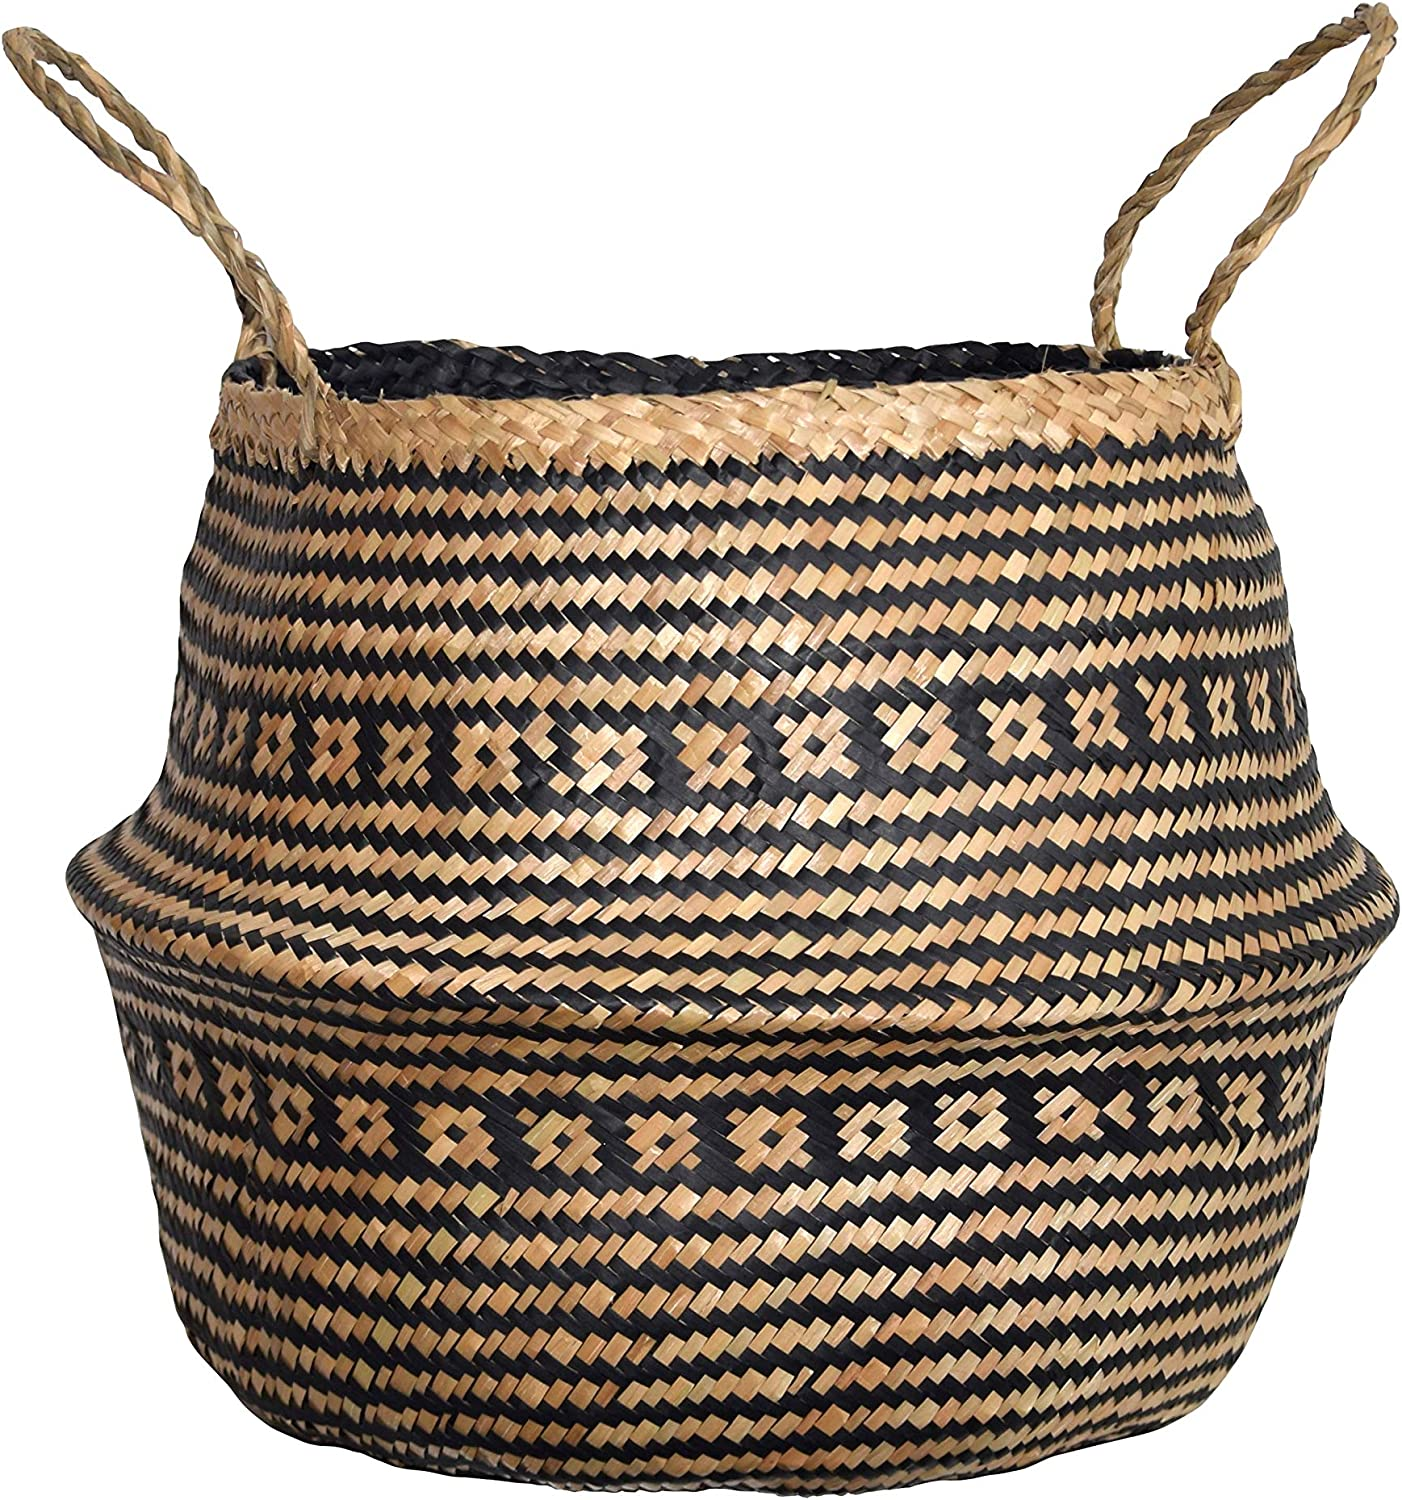 DUFMOD Medium Natural and Plush Woven Seagrass Tote Belly Basket for Storage, Laundry, Picnic, Plant Pot Cover, and Beach Bag (Plush Criss-Cross Seagrass Black, Medium)